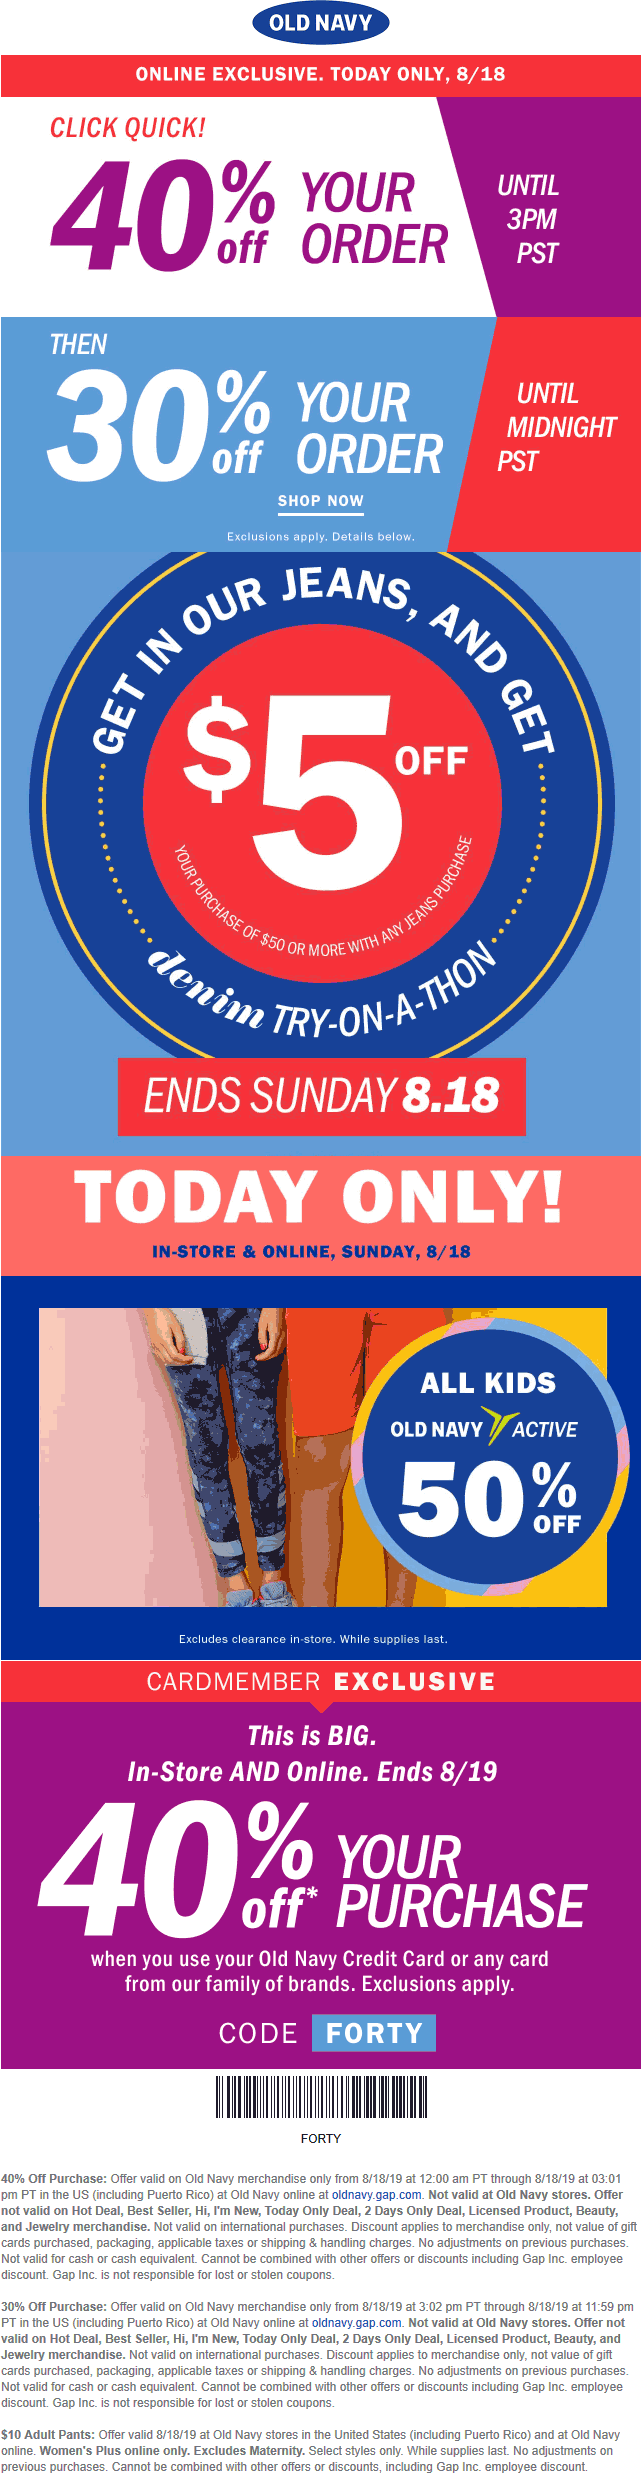 Old Navy Coupon November 2019 40% off online & more today at Old Navy via promo code FORTY